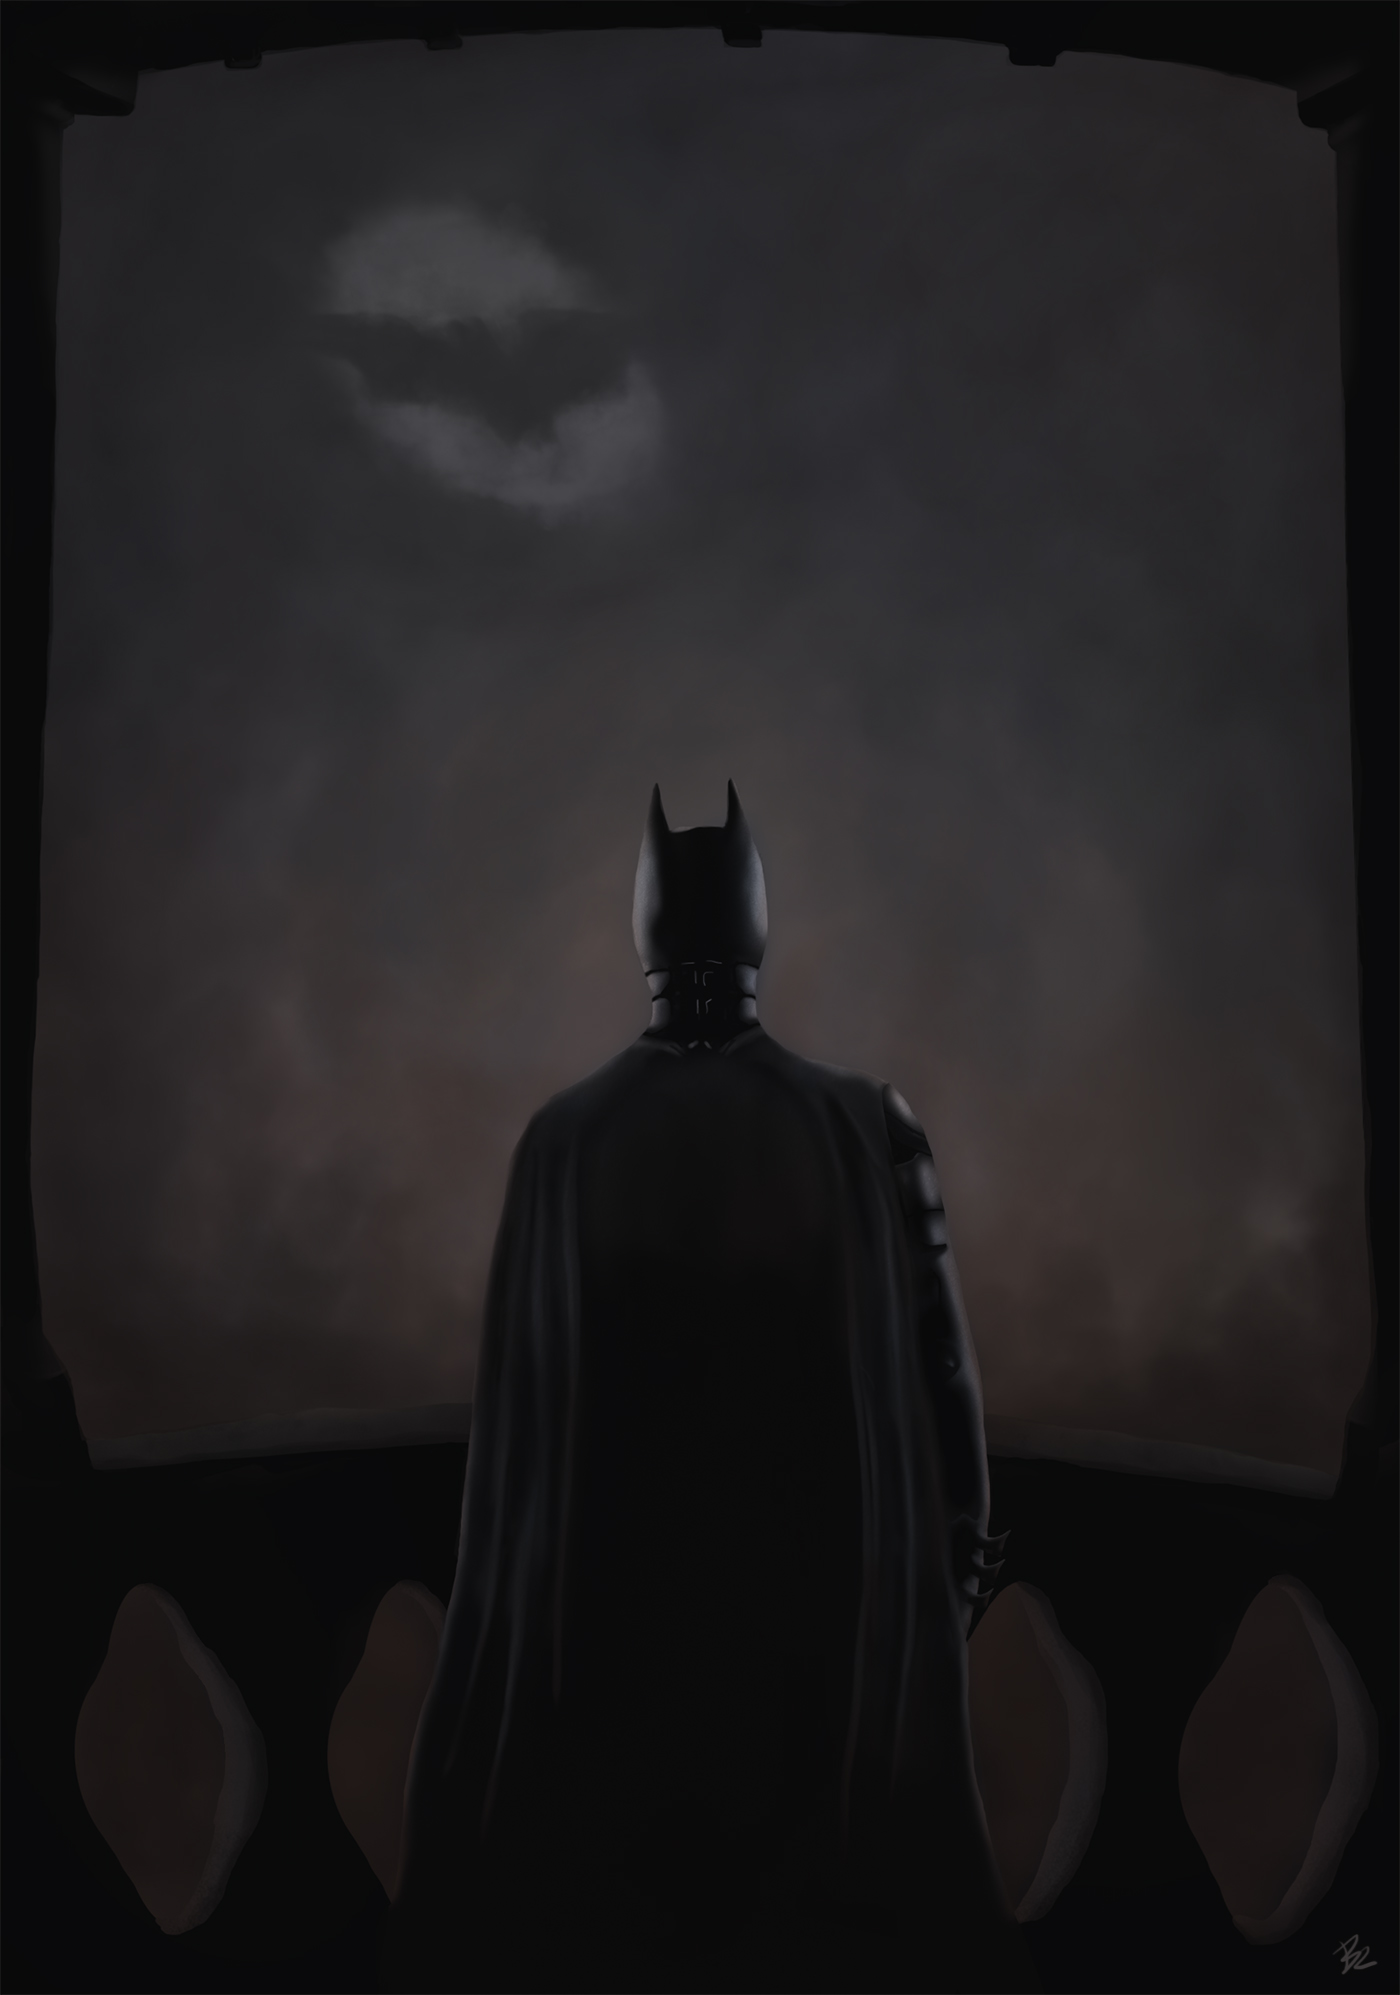 The Dark Knight by brnrdbrk